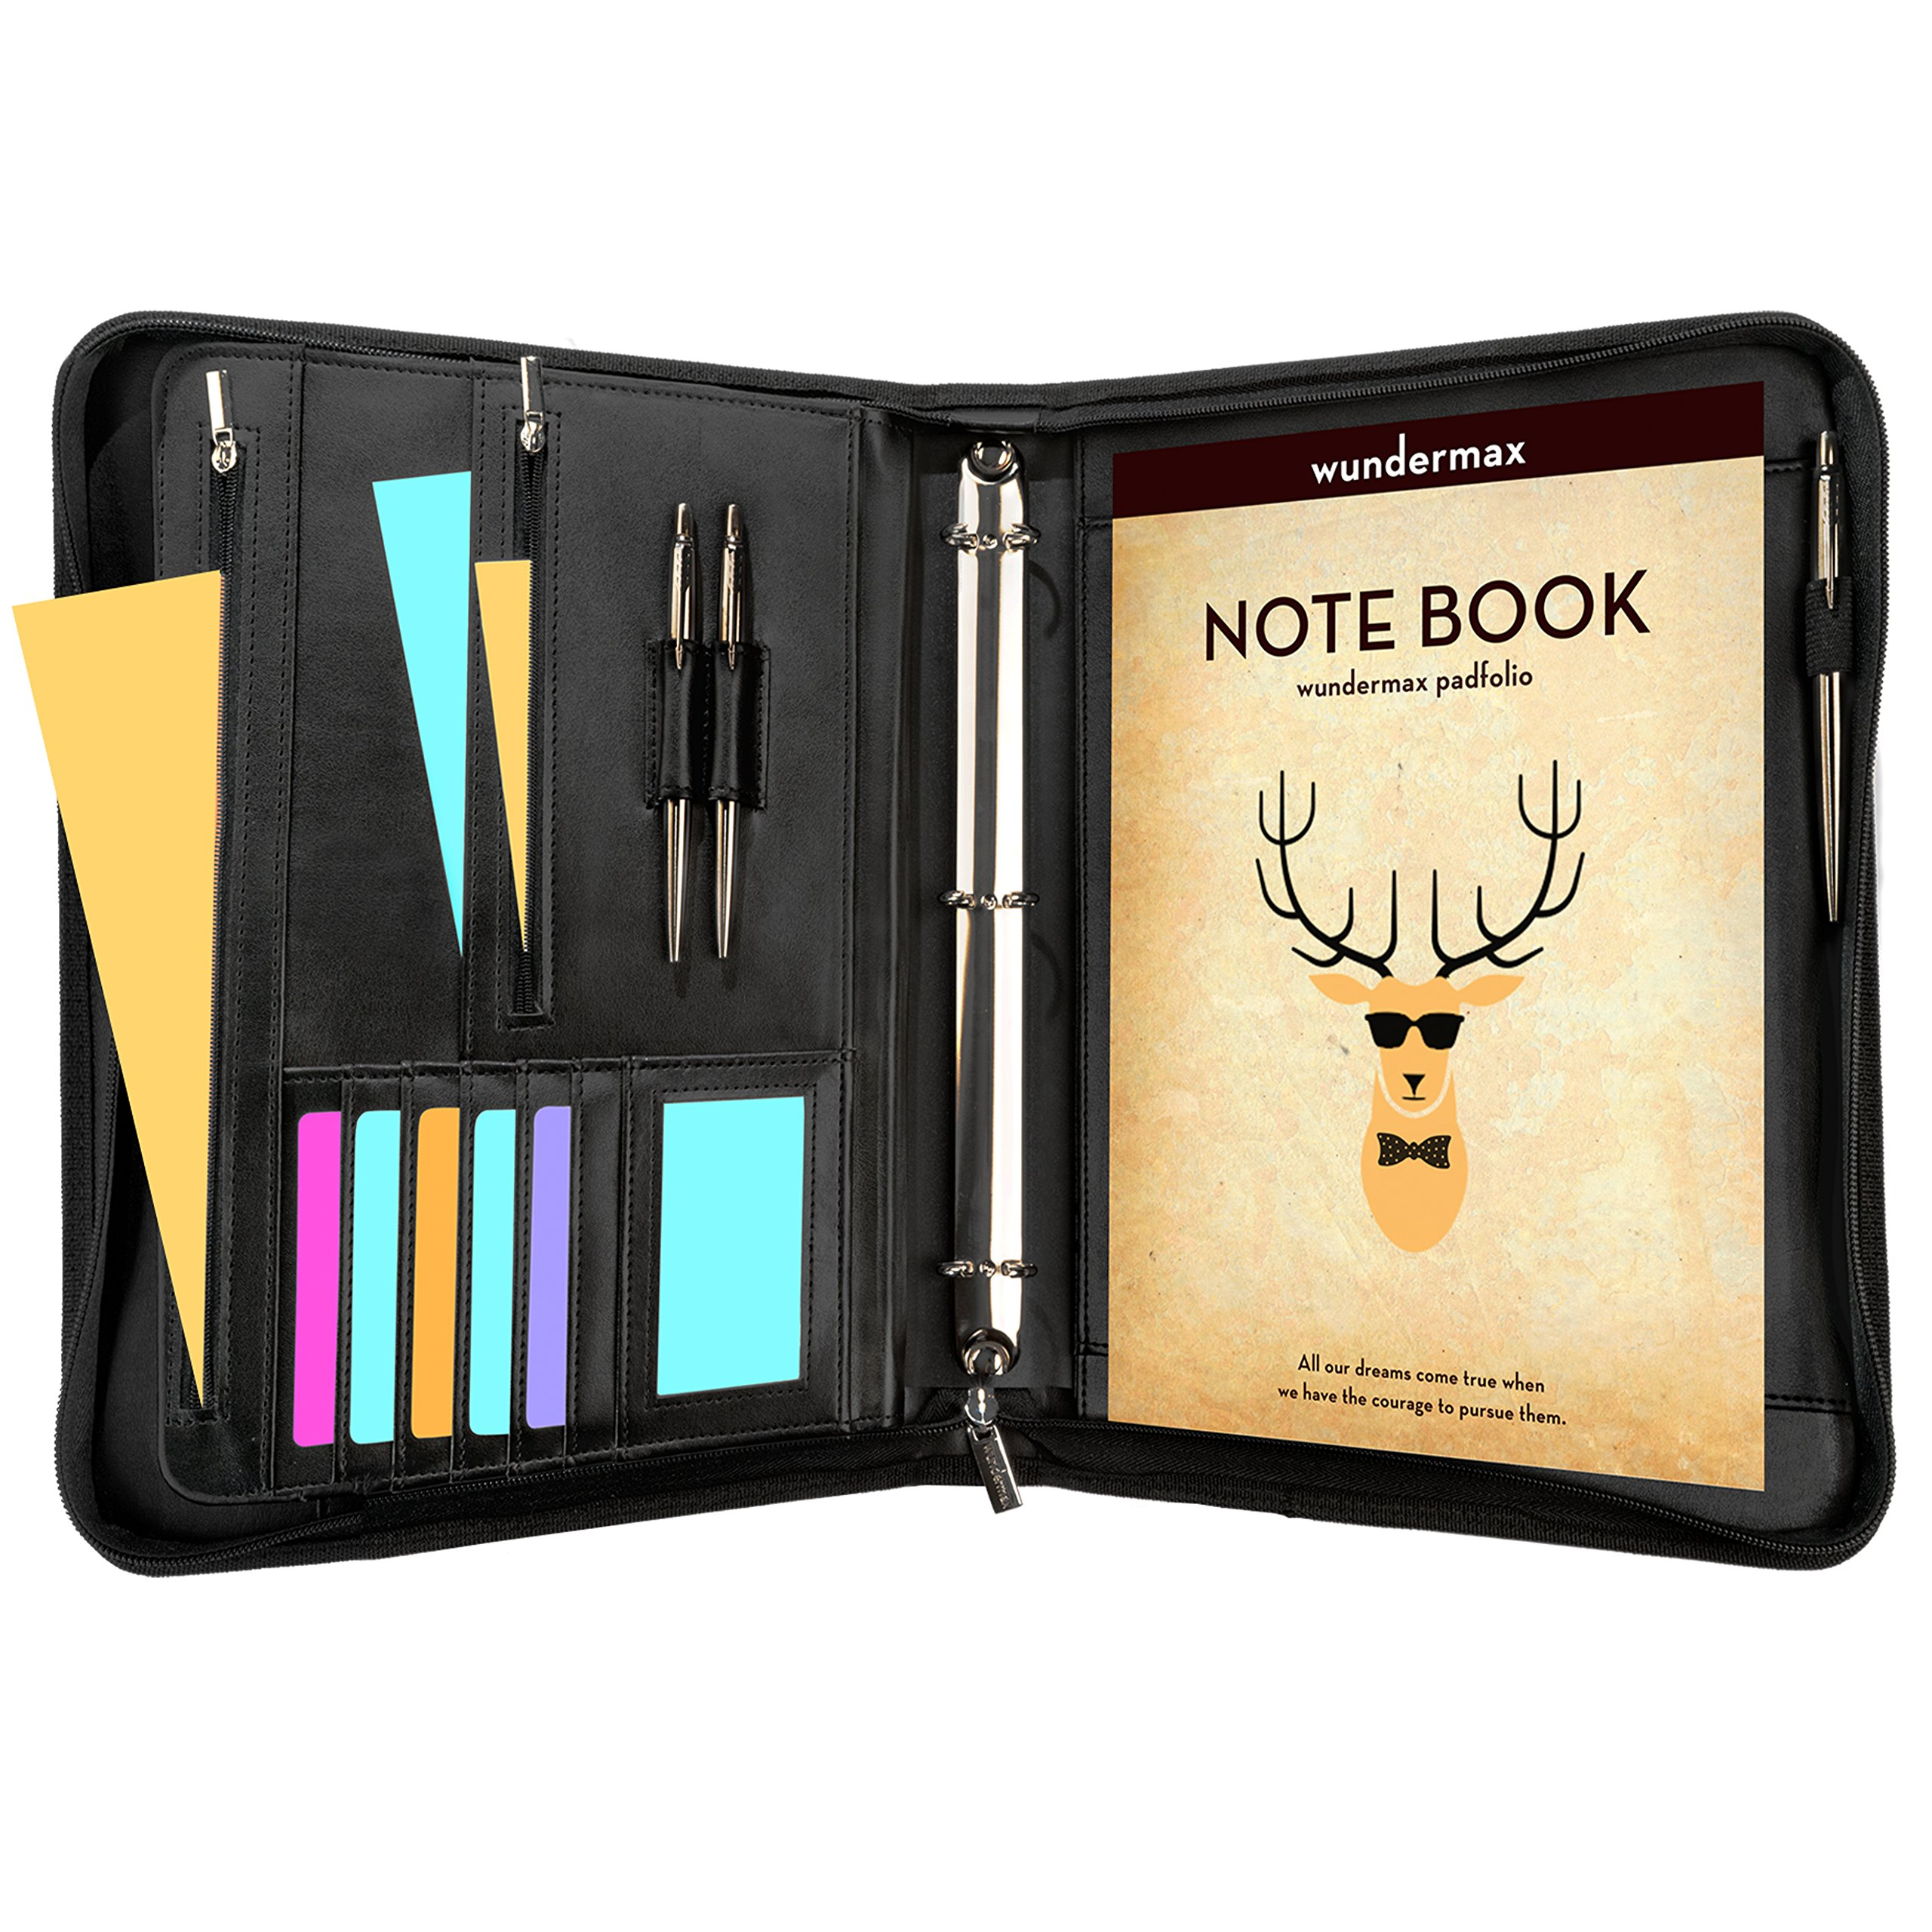 Wundermax Portfolio Binder A Zippered Padfolio with 3 Ring Binder Document Organizer Professional Interview PU Leather Folder Resume Holder Work Portfolio with Notebook and 10.1 Inch Tablet Sleeve by Wundermax (Image #1)